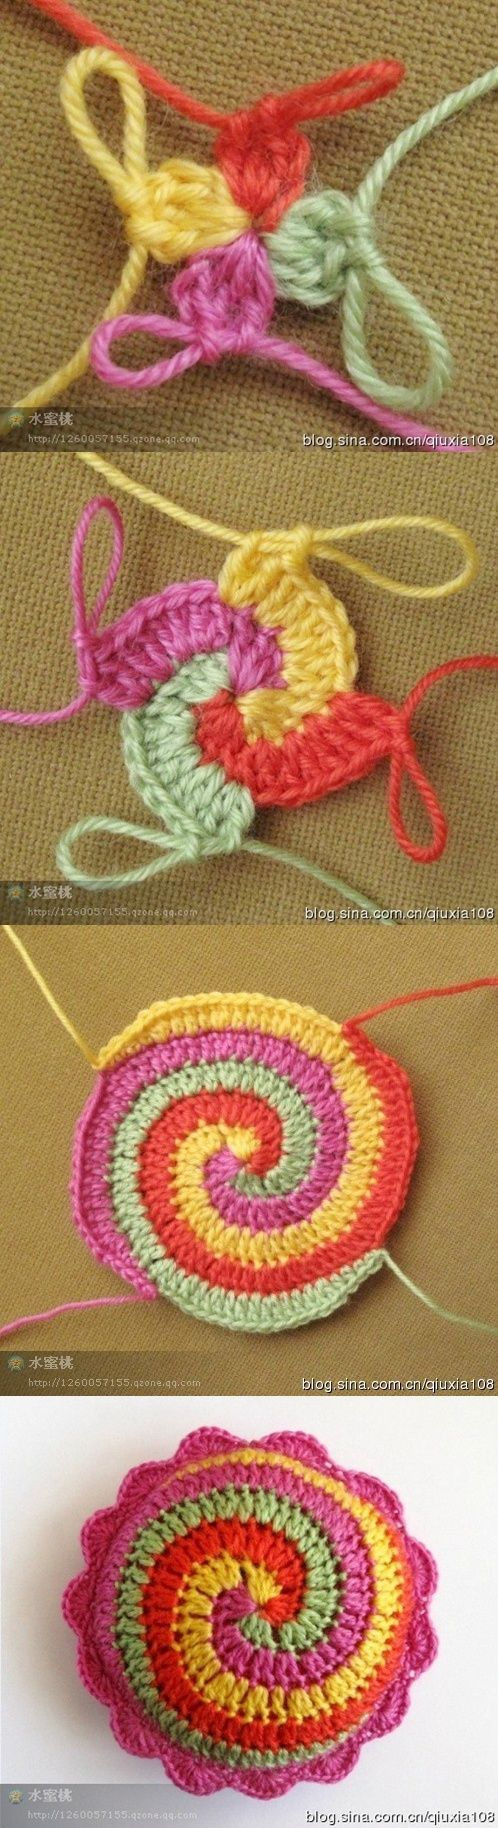 Spiral crochet. This looks pretty simple! Maybe try red and white to make a peppermint pattern?